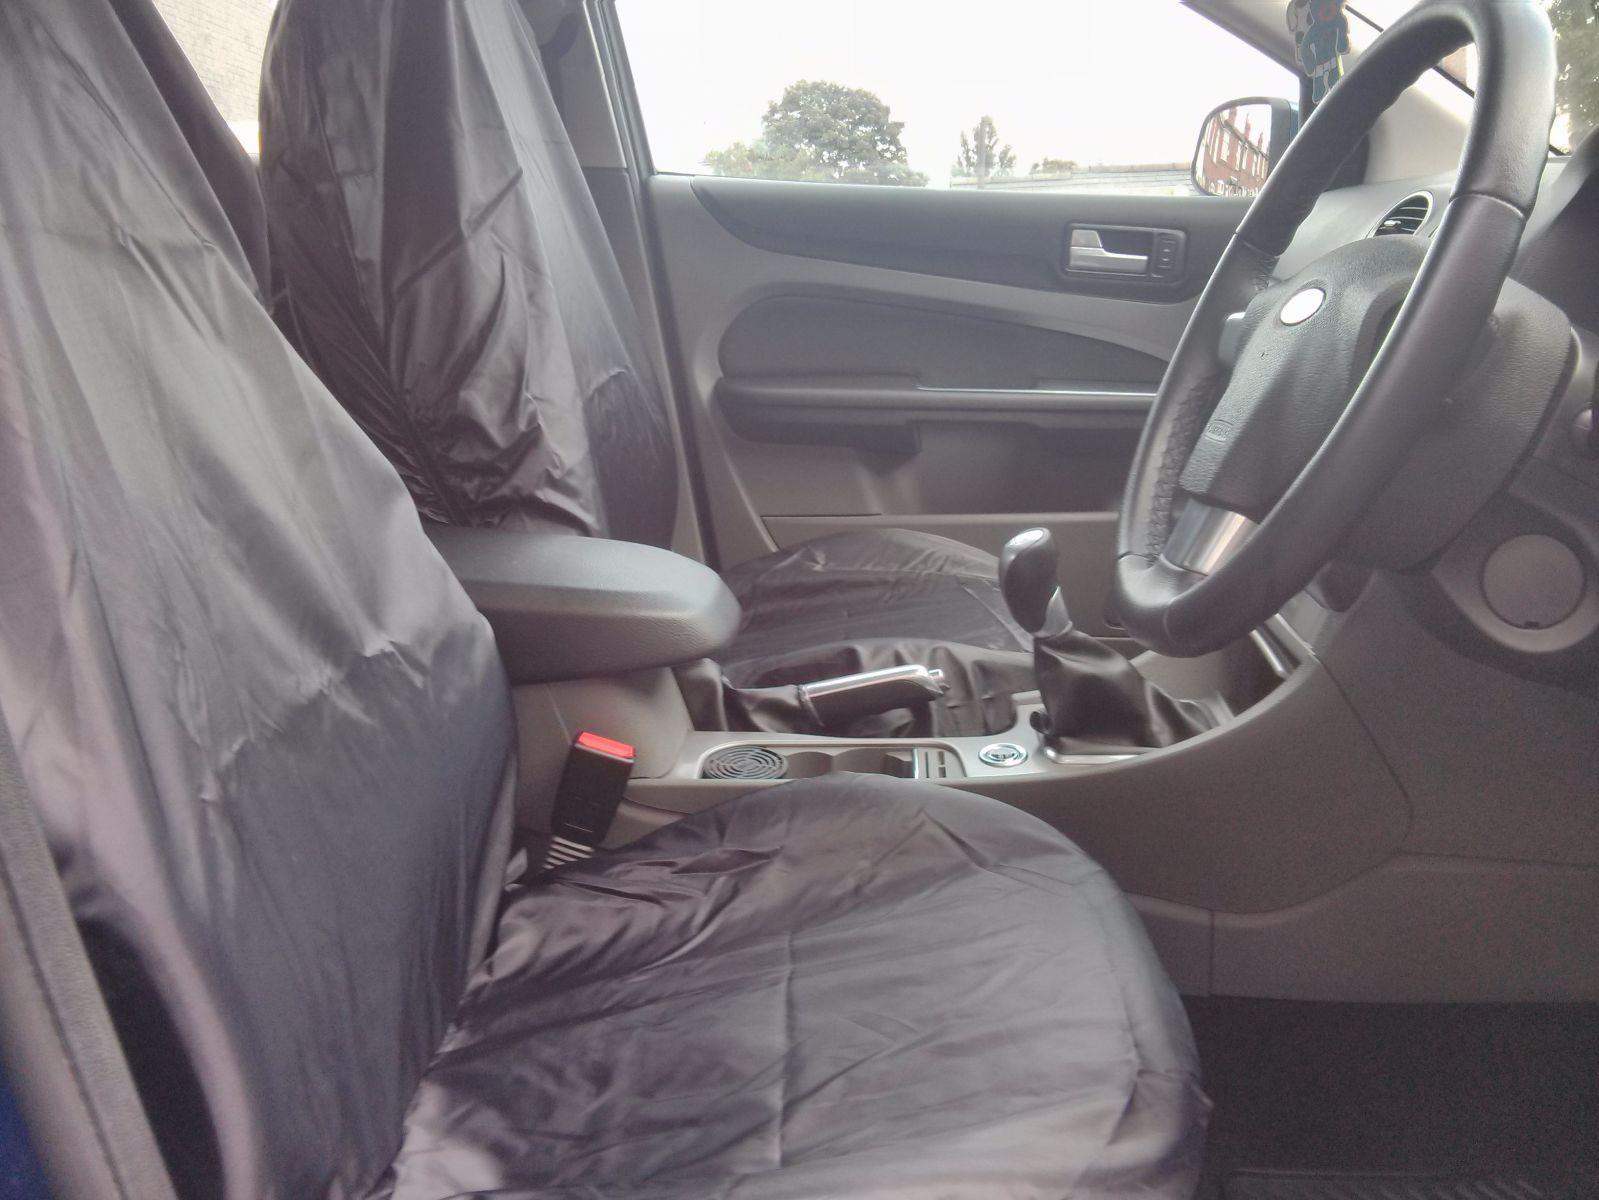 Waterproof Seat Covers for protection